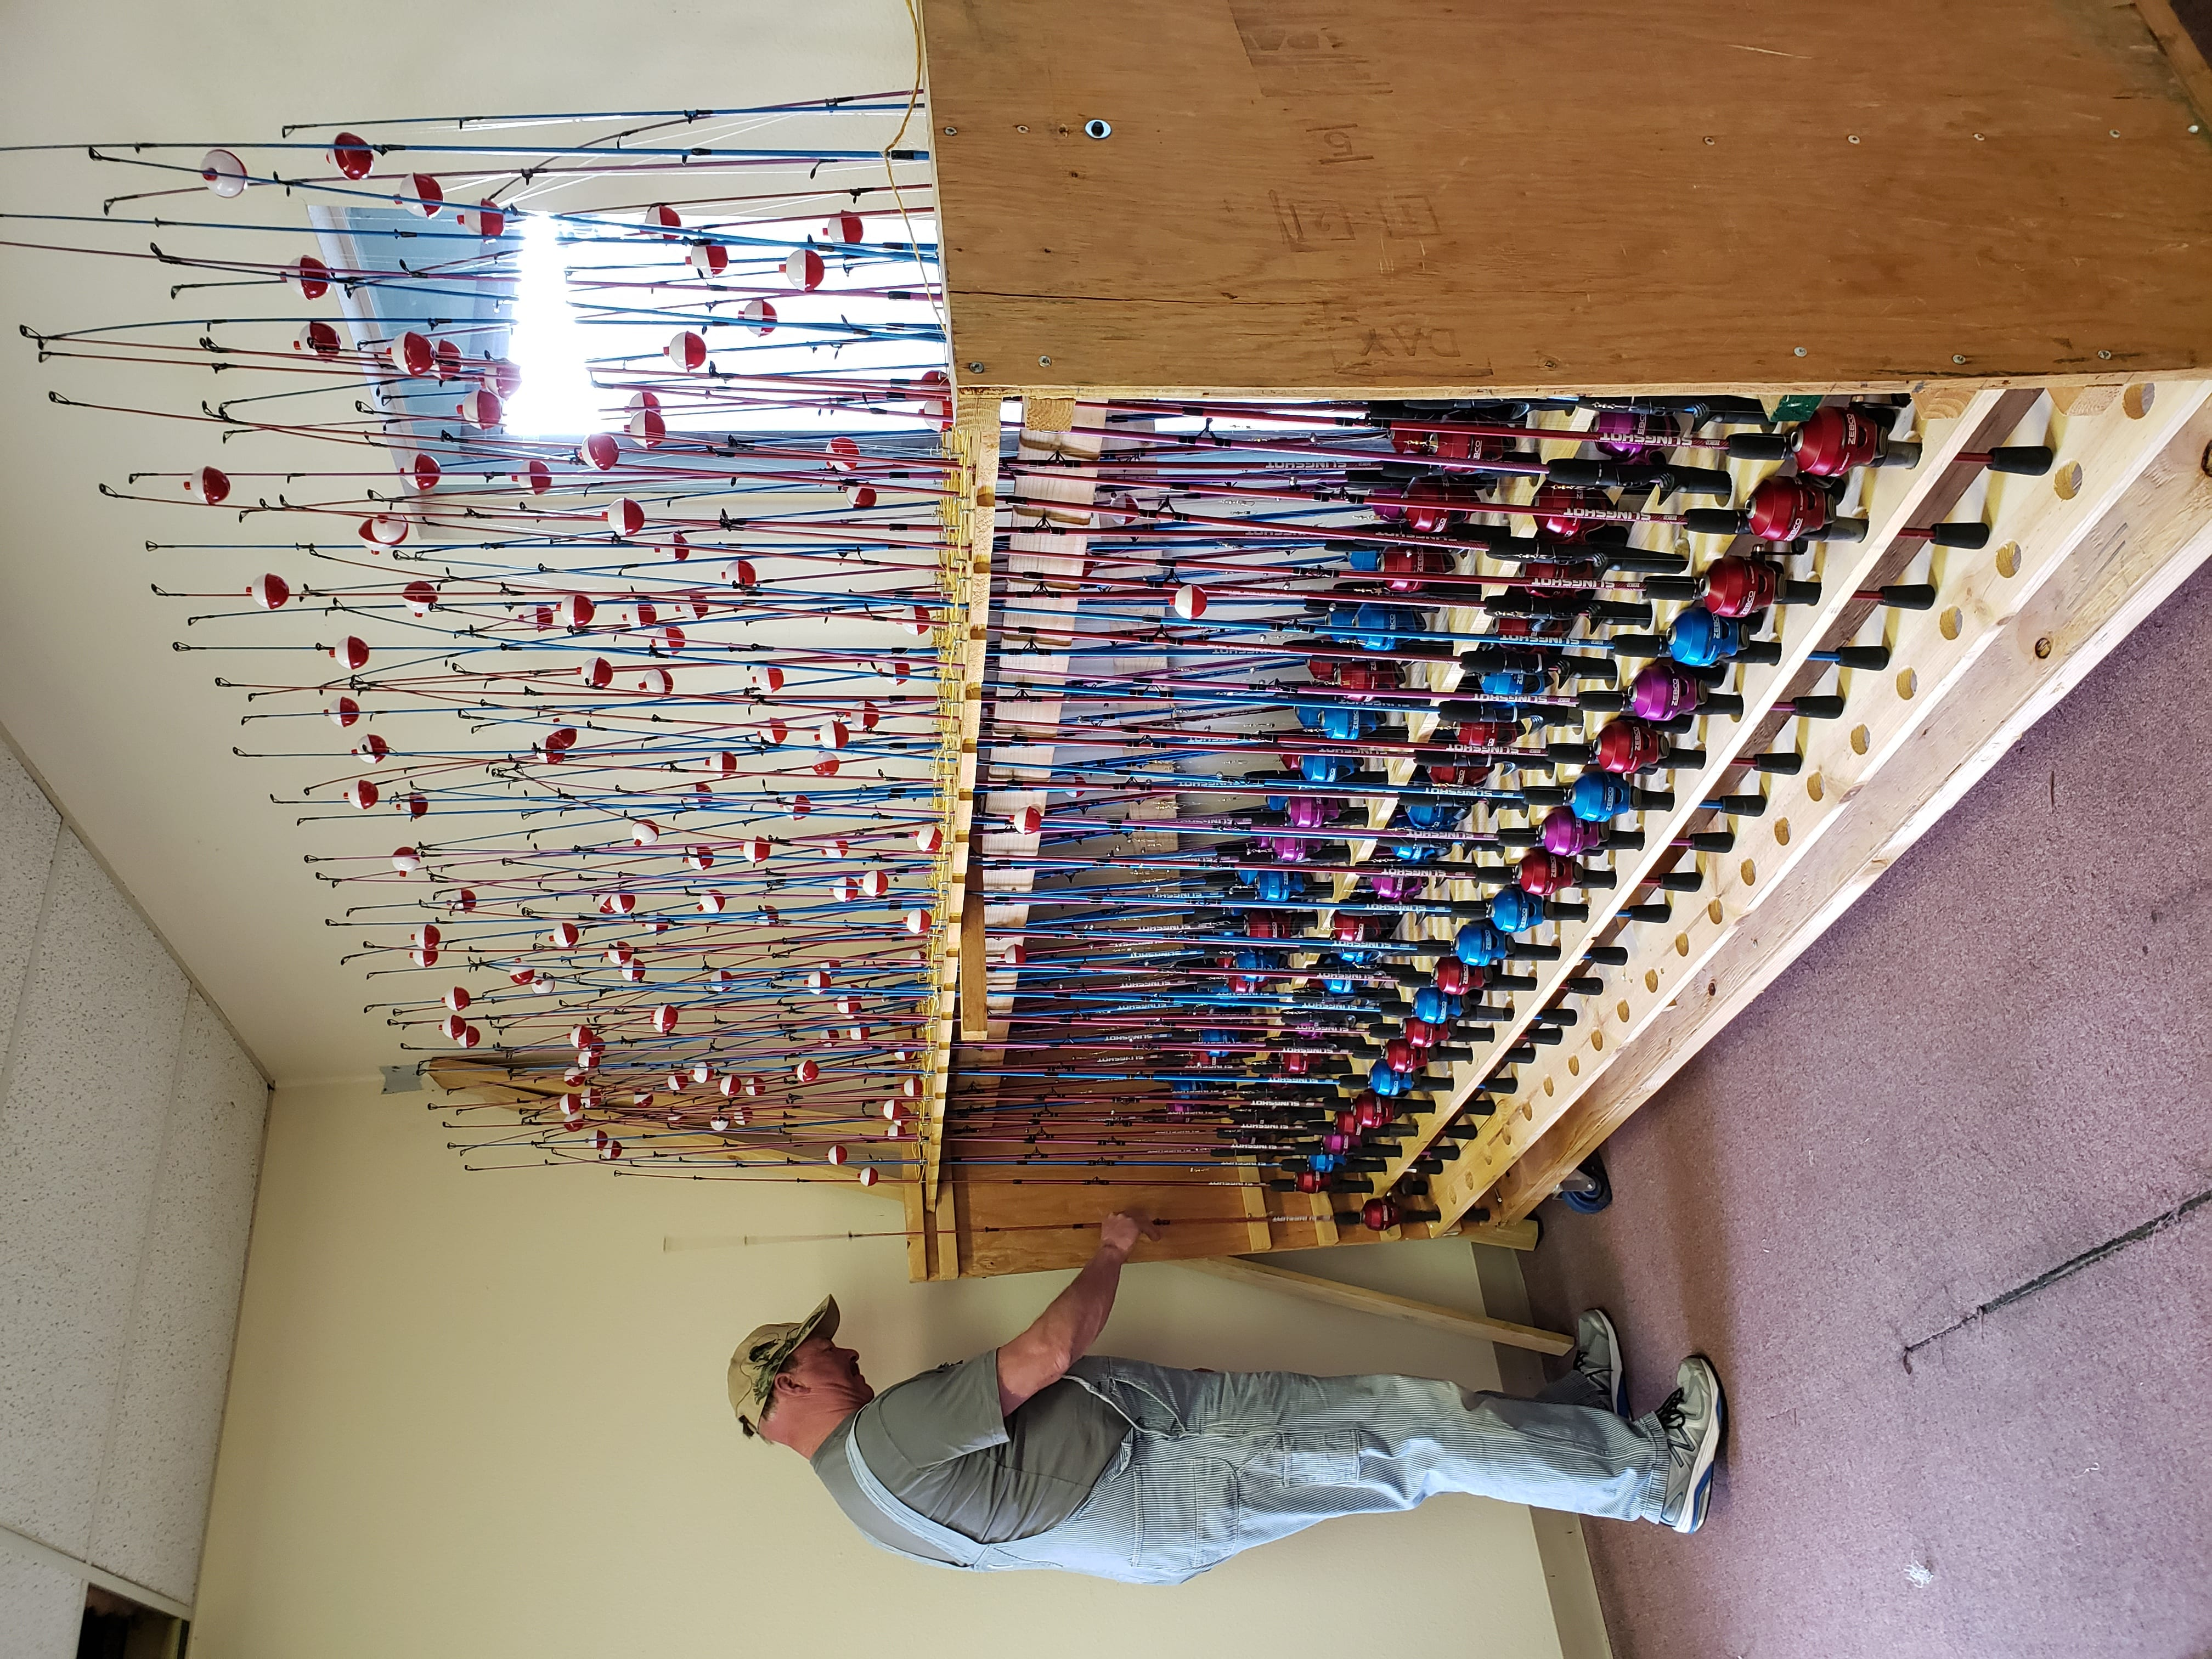 Building 3,000 fishing rods